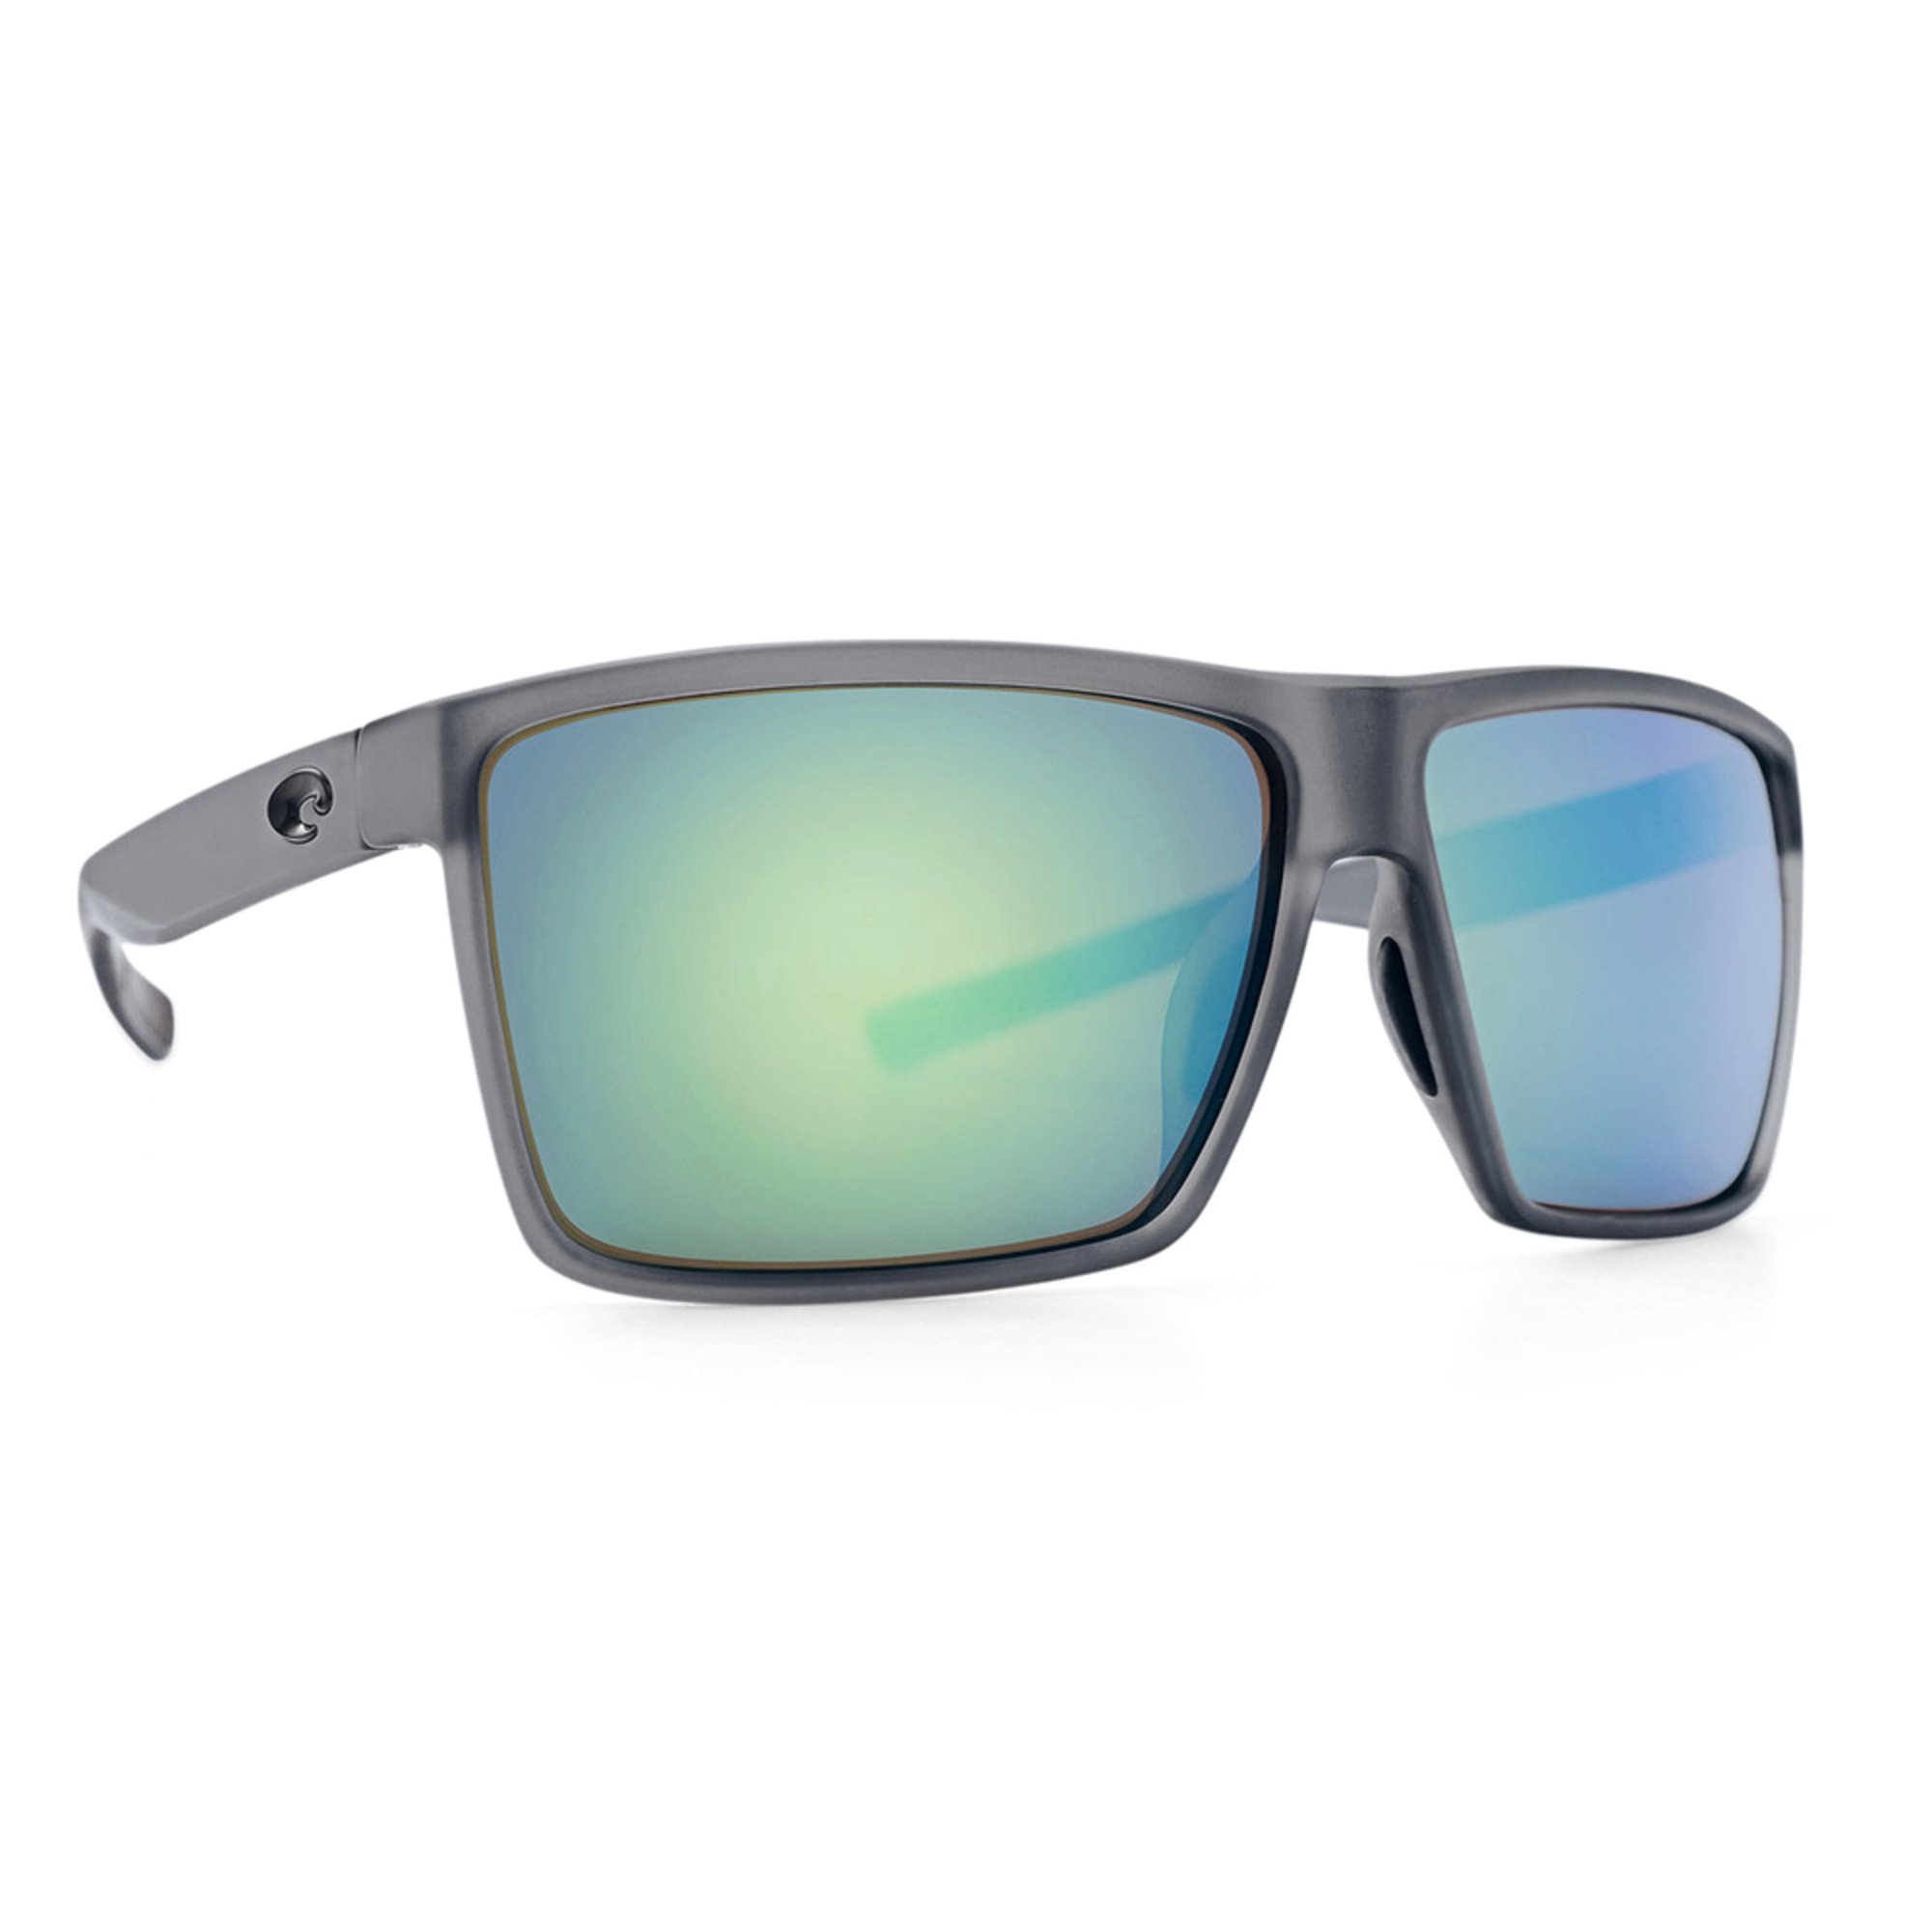 6c1147a7d5 Costa del Mar. Costa Del Mar Men s Polarized Rincon Sunglasses